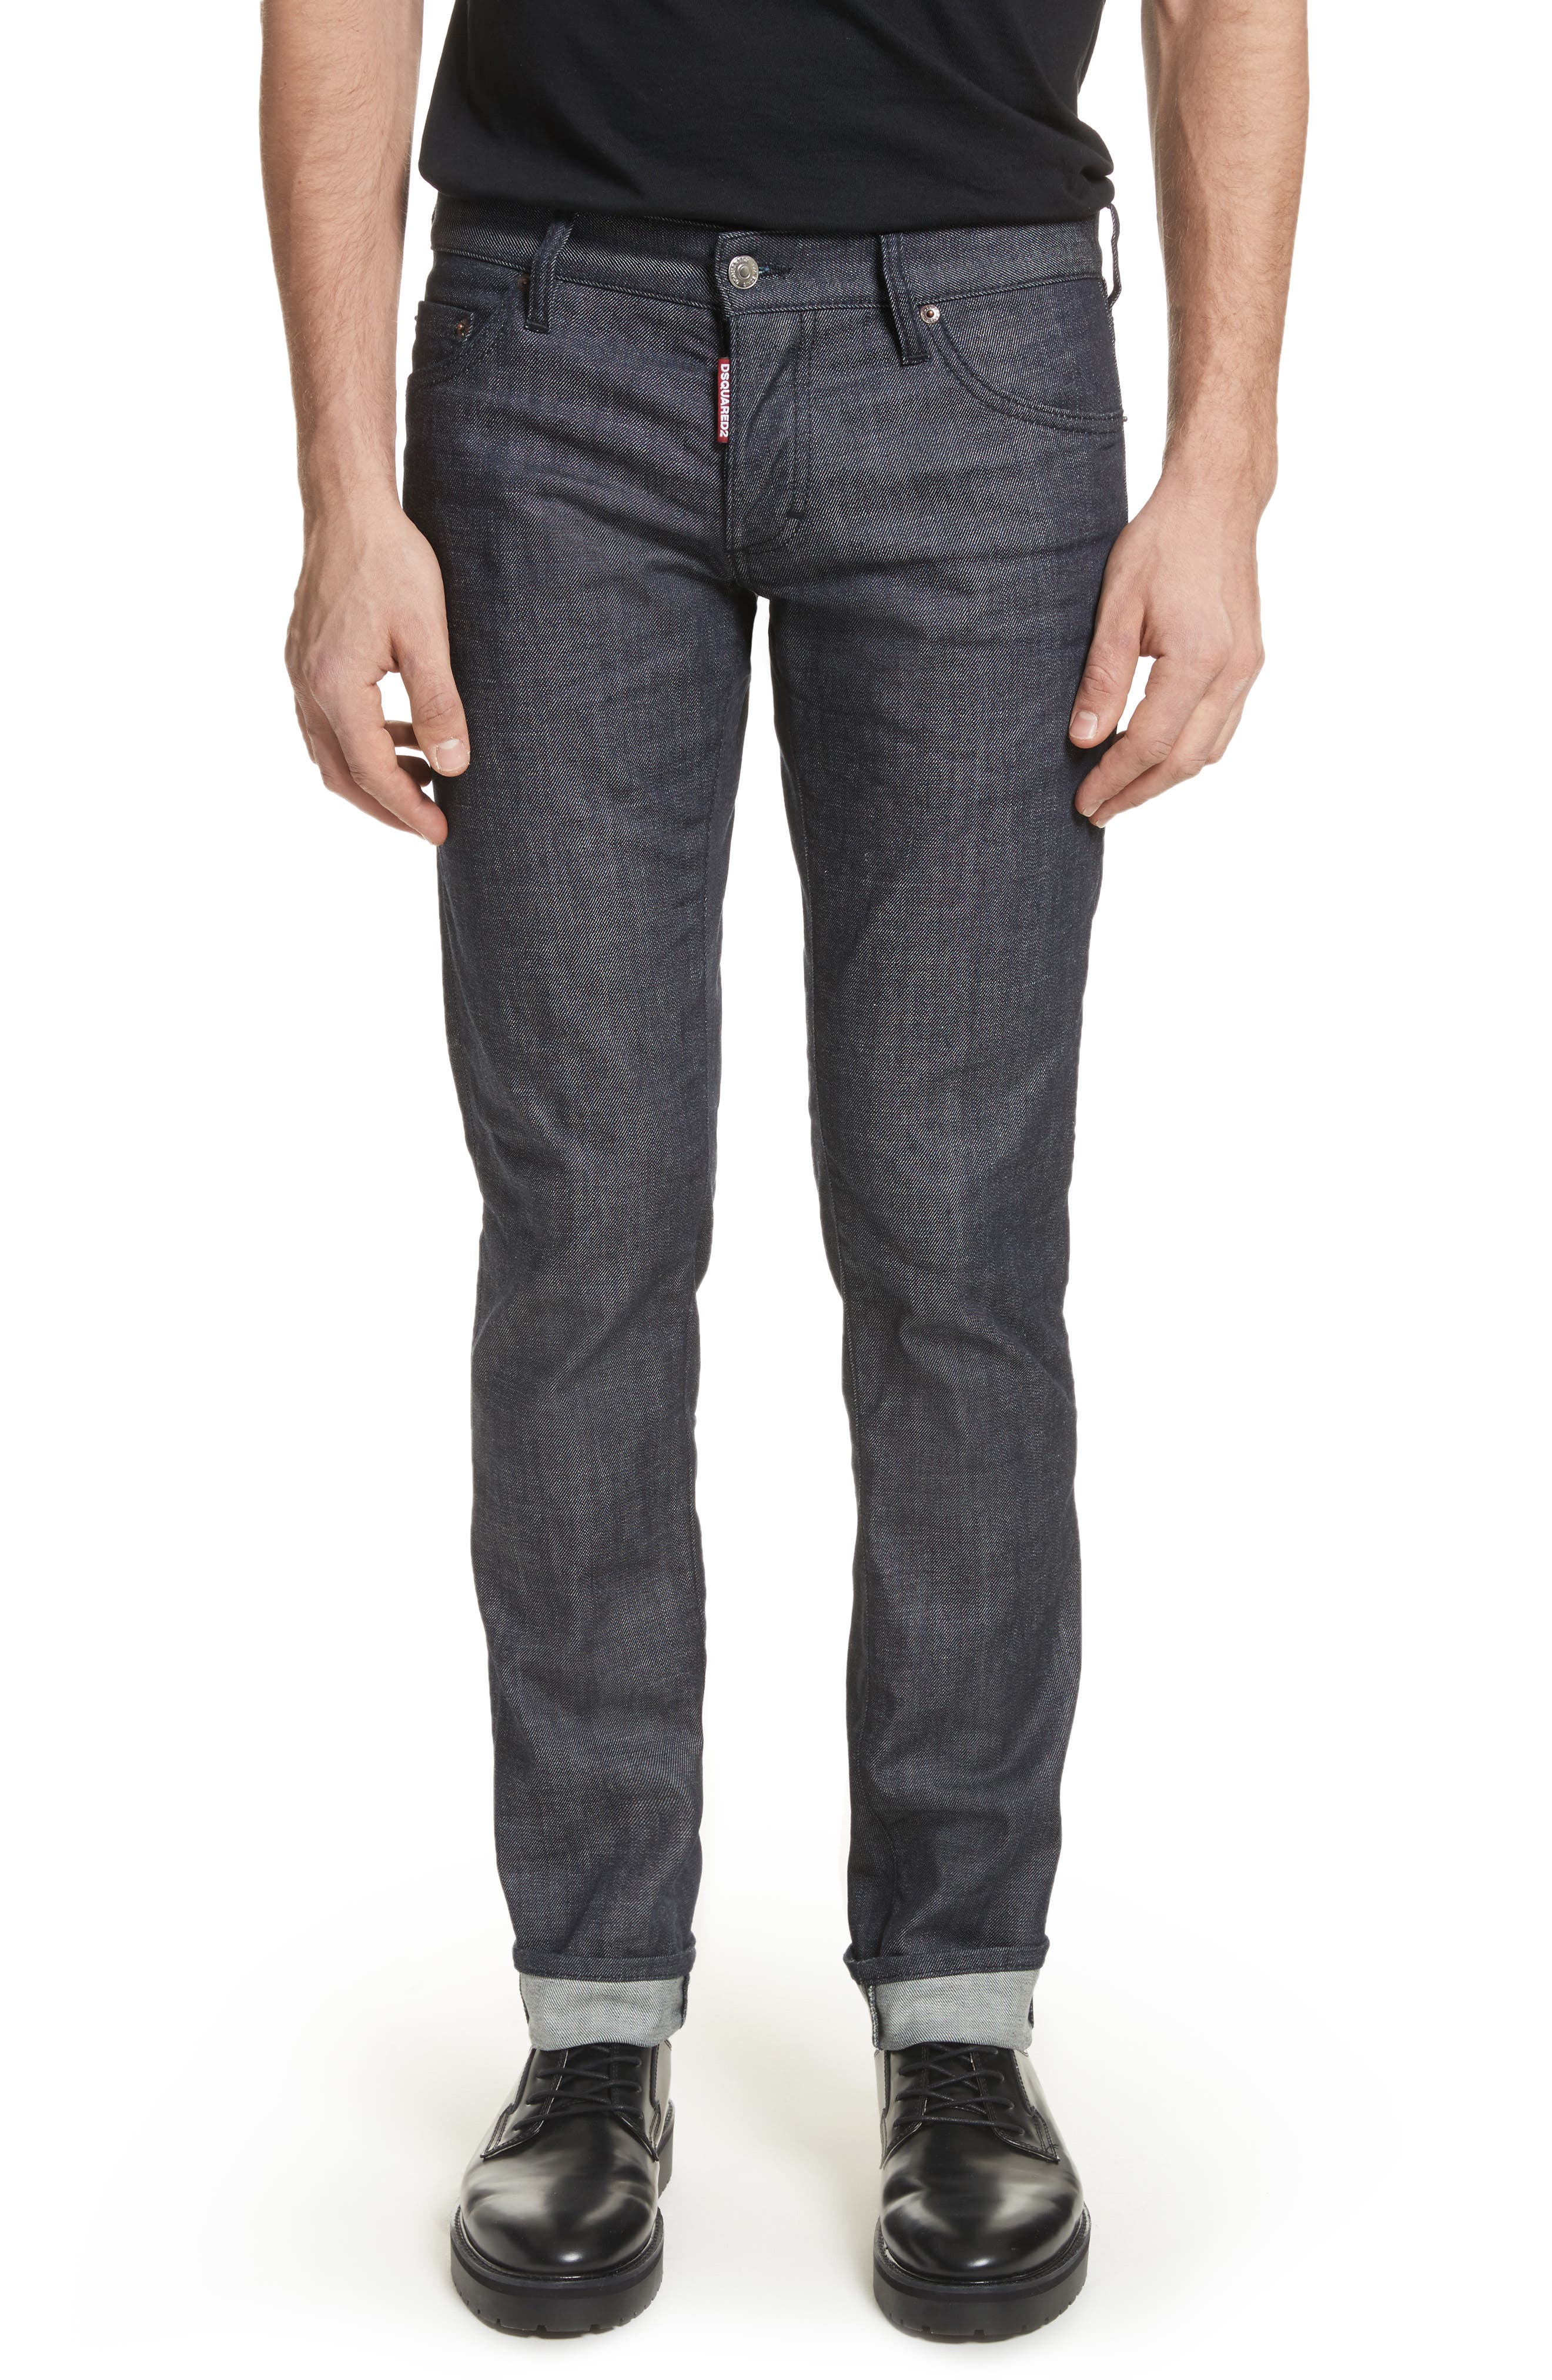 24-7Star Slim Fit Jeans,                         Main,                         color, Navy/Blue